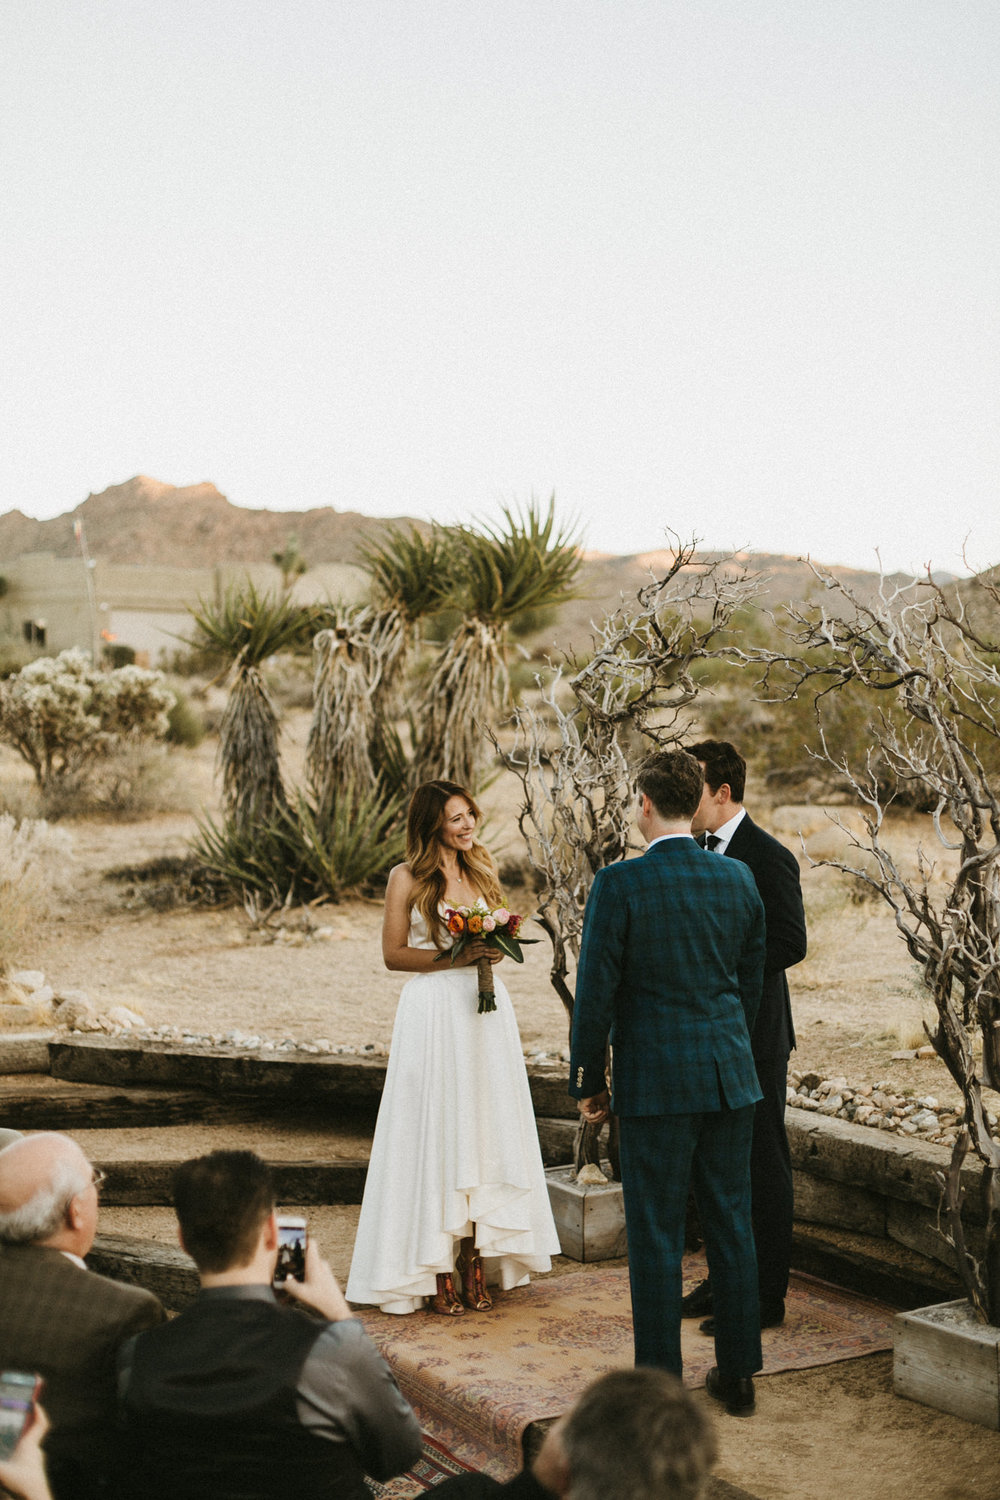 sacred_sands_joshua_tree_wedding-59.jpg